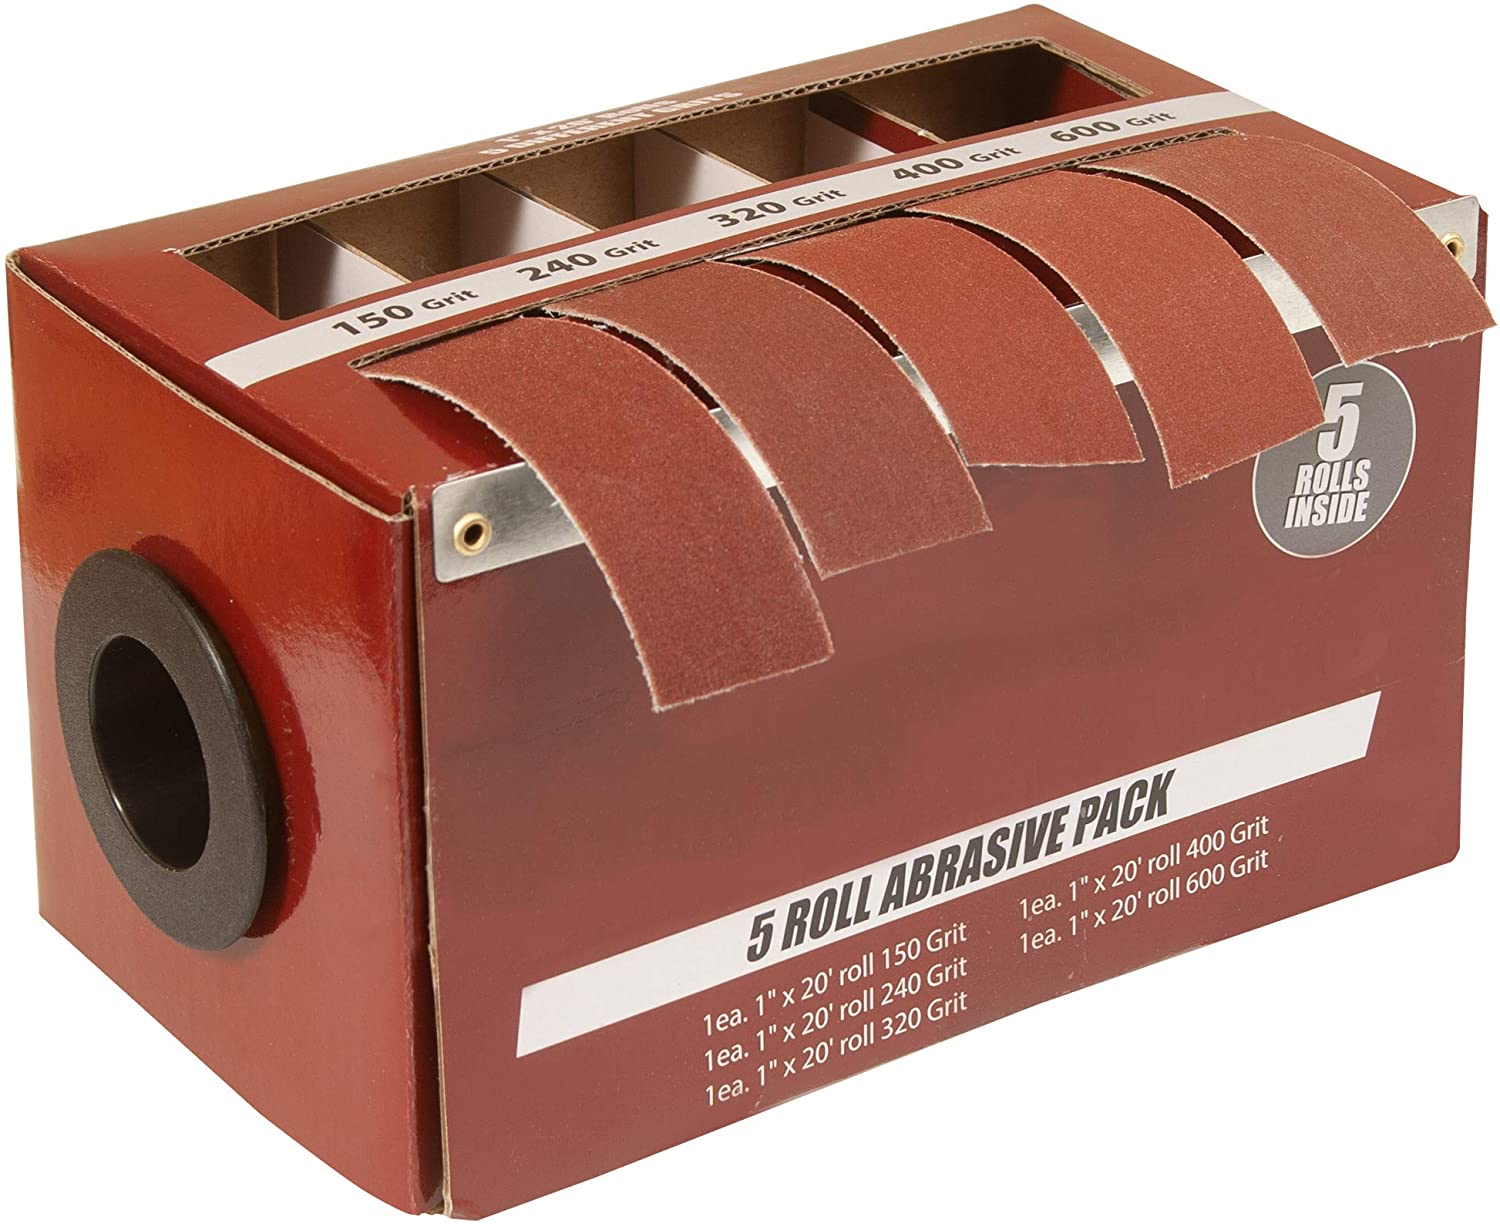 Boxed Multi-Roll Assorted Abrasive Rolls For Wood Turners, Furniture Repair, Woodworkers, Metal Workers and Automotive Body Work In Assorted Grits, Includes 150, 240, 320, 400 and 600 Grit Rolls